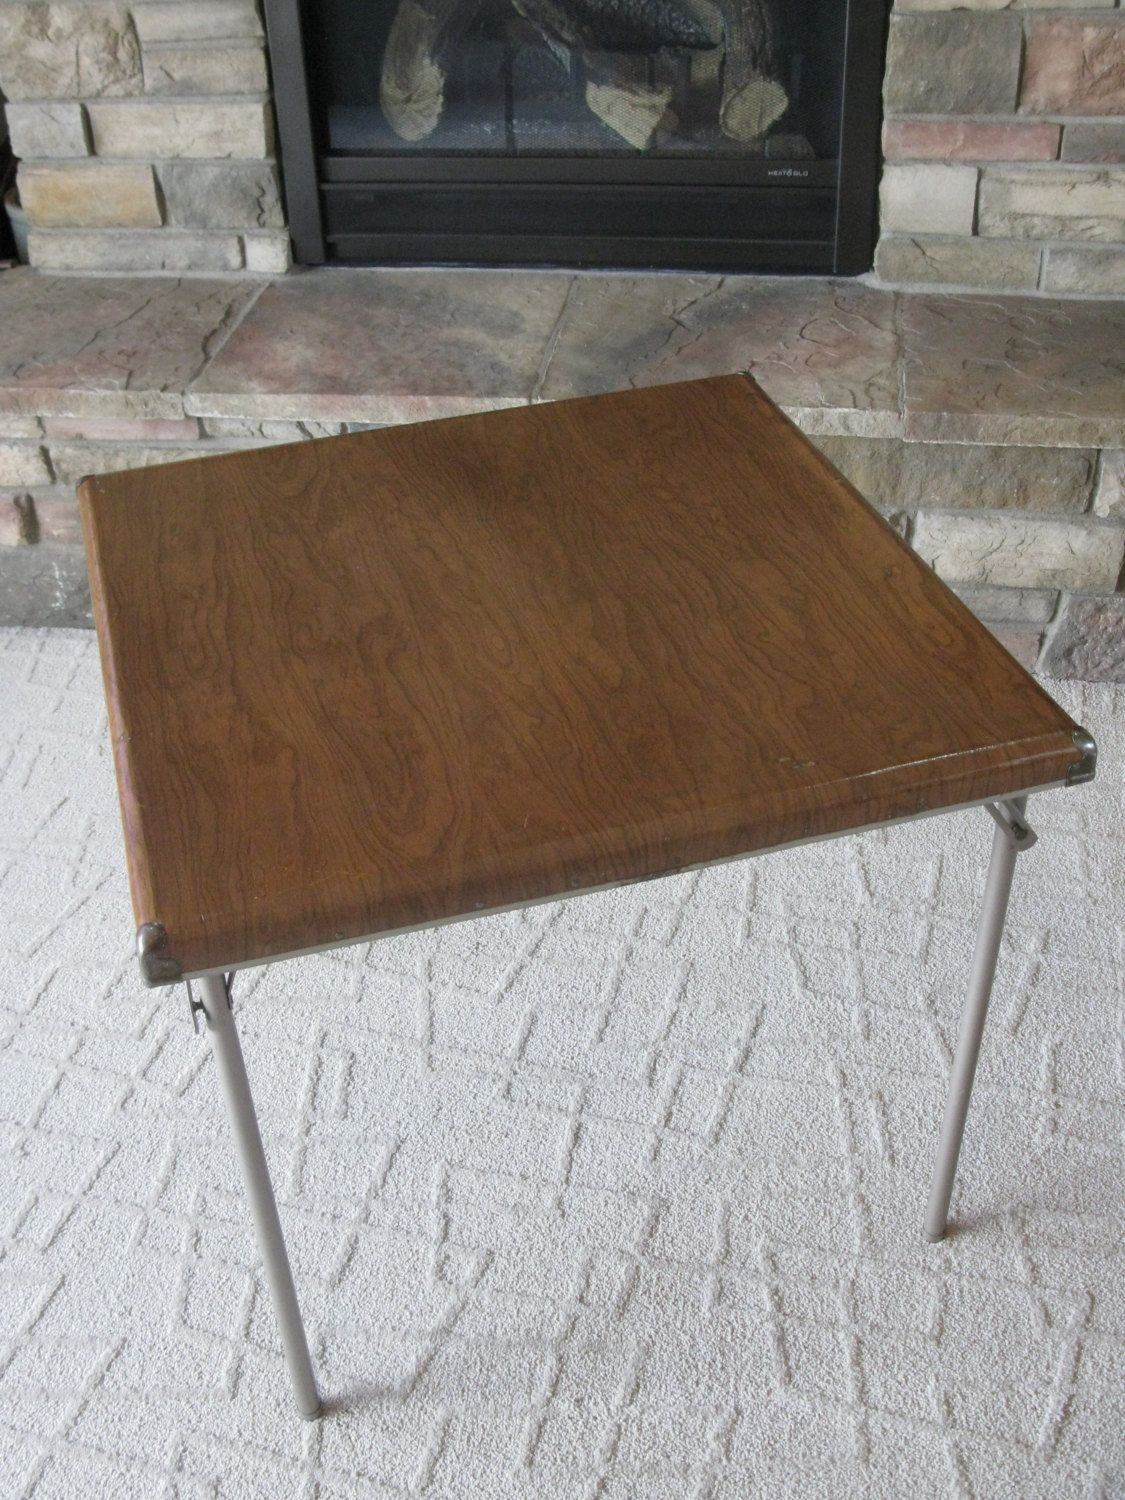 Vintage Samsonite Card Table   1950s  Folding Table  Metal Legs  Faux Wood  Design  Shabby Chic  Cardboard  Bridge Table  Fiberboard Table By  Oakiesclaptrap ...